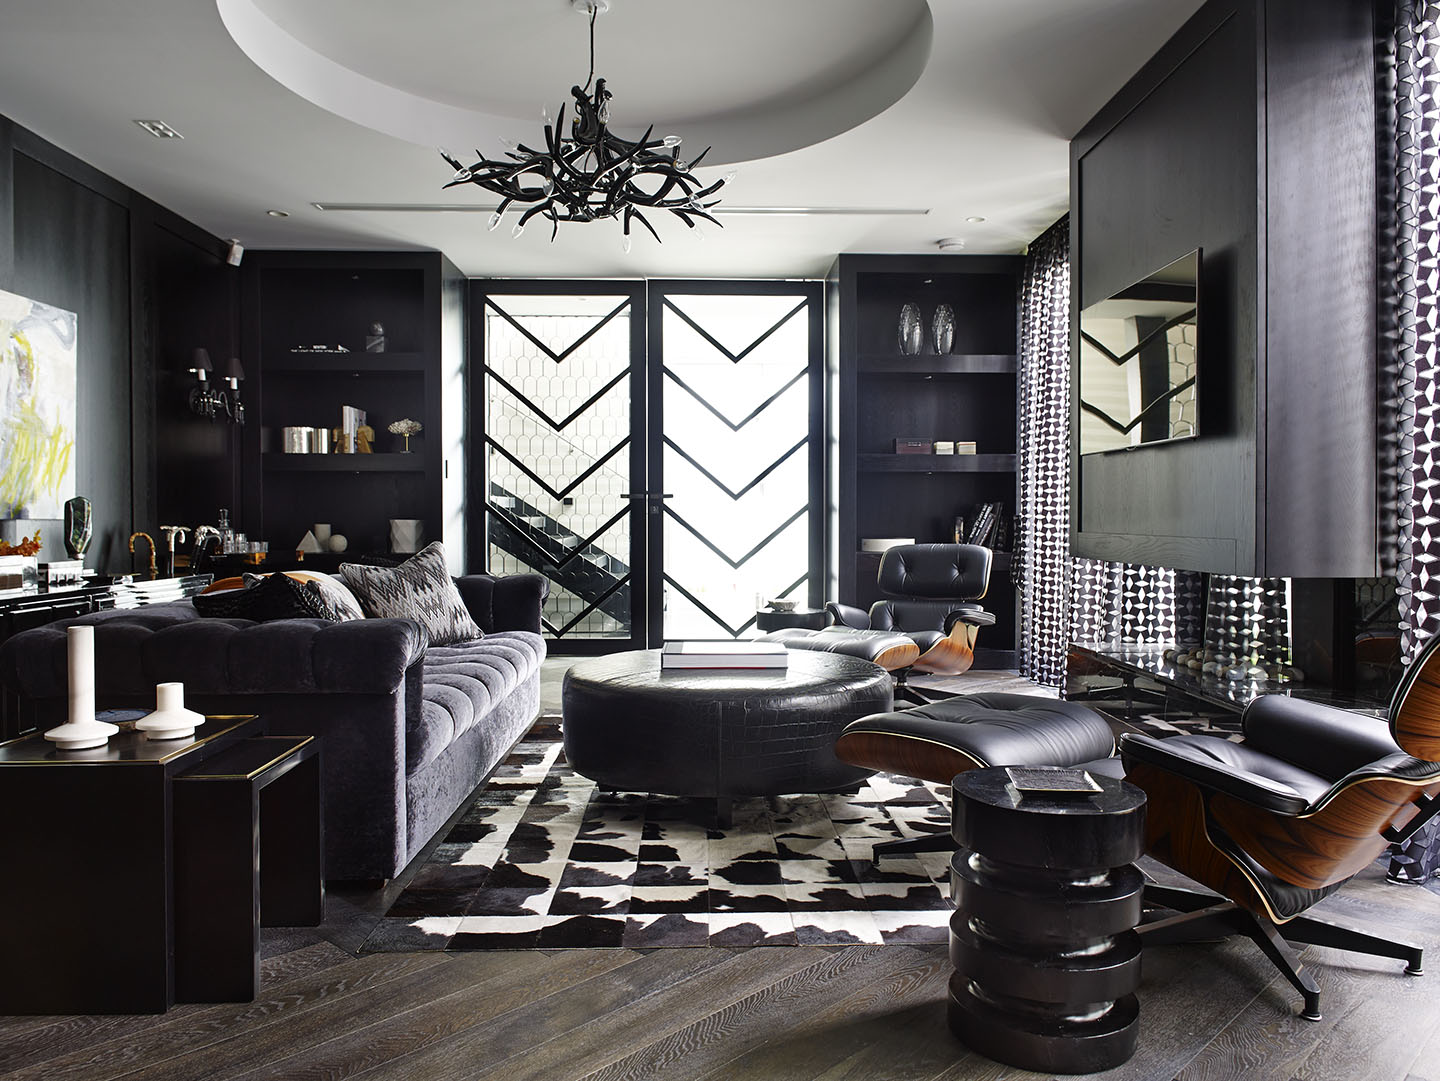 Outstanding Living Rooms by Greg Natale to Inspire your Home living rooms by greg natale Outstanding Living Rooms by Greg Natale to Inspire your Home Outstanding Living Rooms by Greg Natale to Inspire your Home7